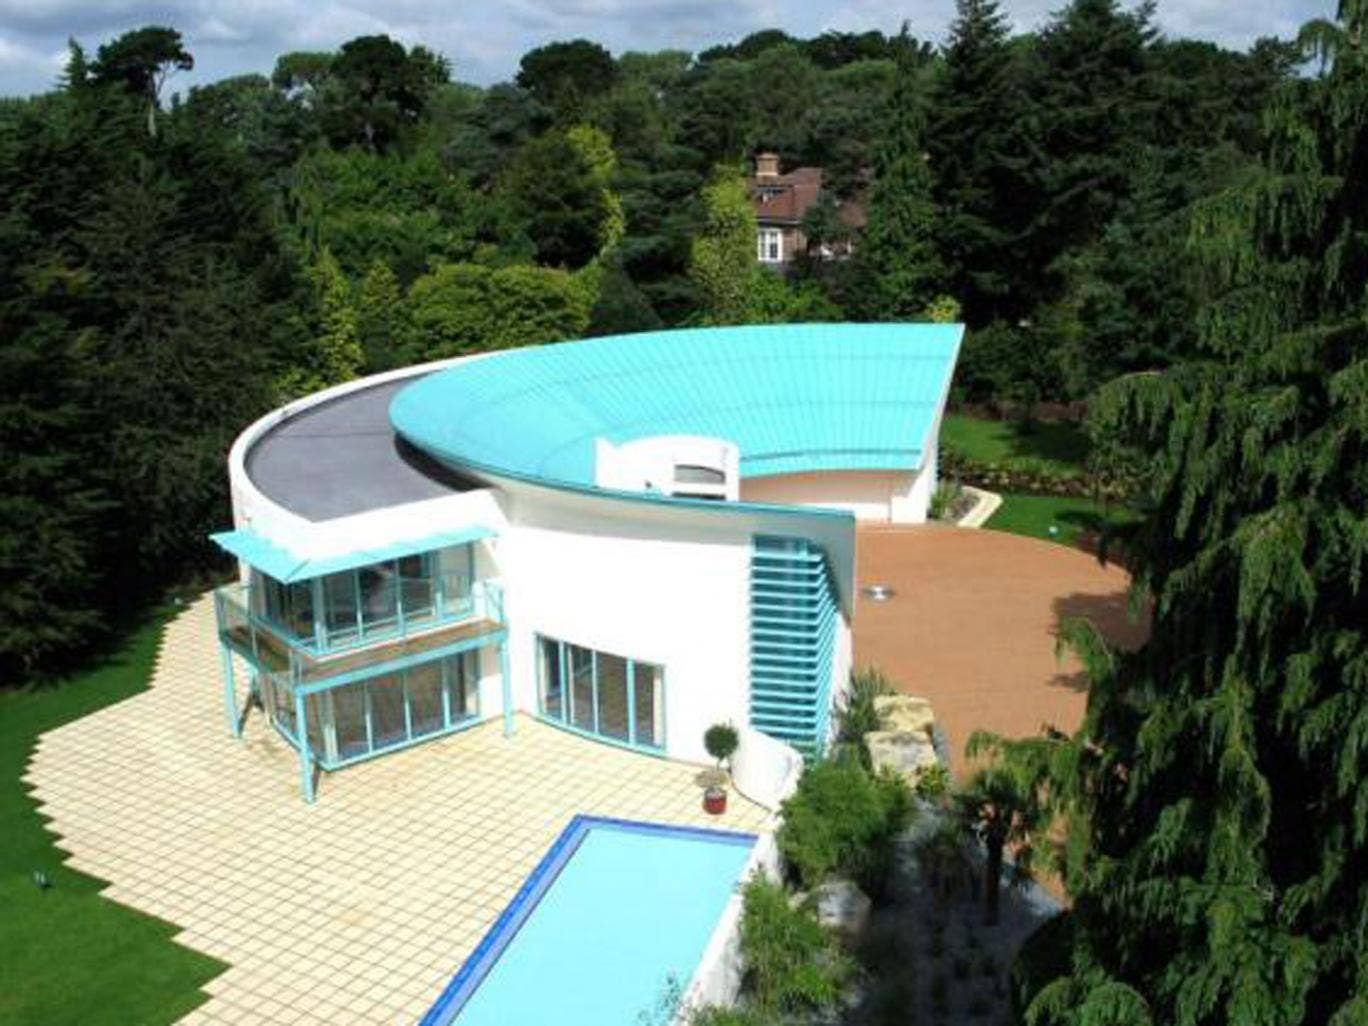 'Thunderbird' house: five bedroom detached house for sale at  Western Avenue, Branksome Park, Poole, Dorset BH13. On with Sotheby's at a guide price of £2,950,000.